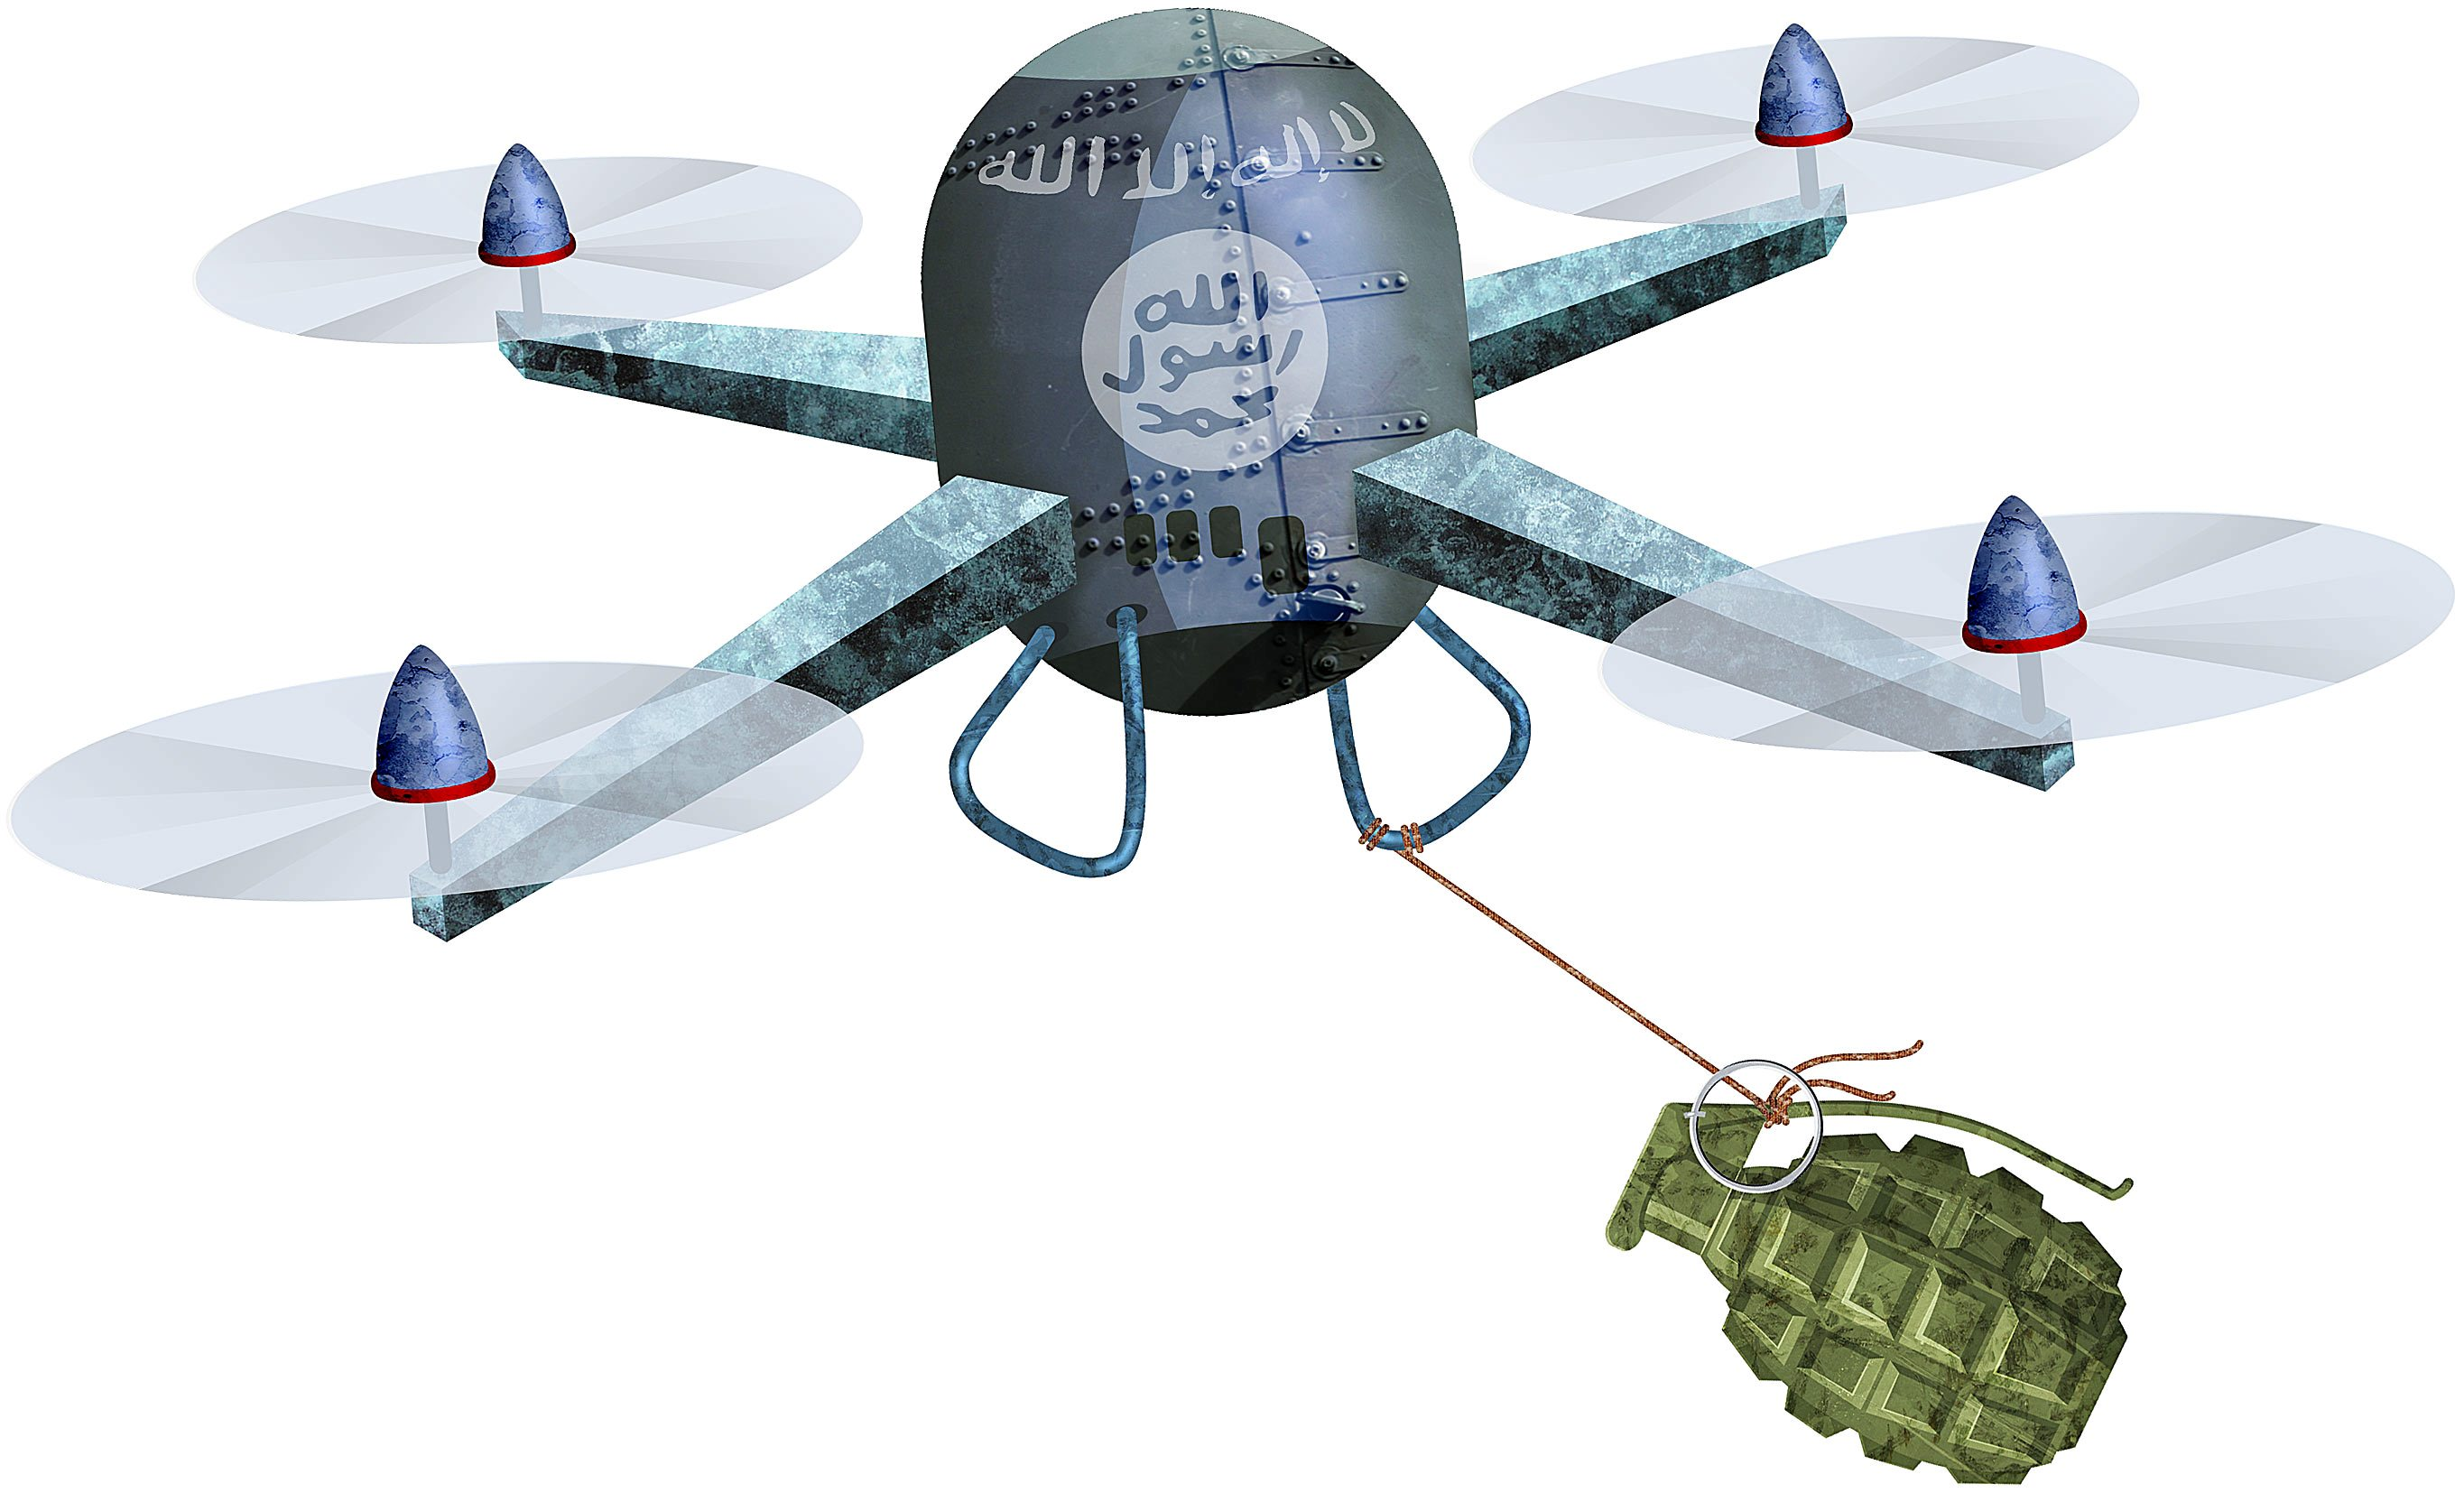 ISIS drones could target Europe - Washington Times